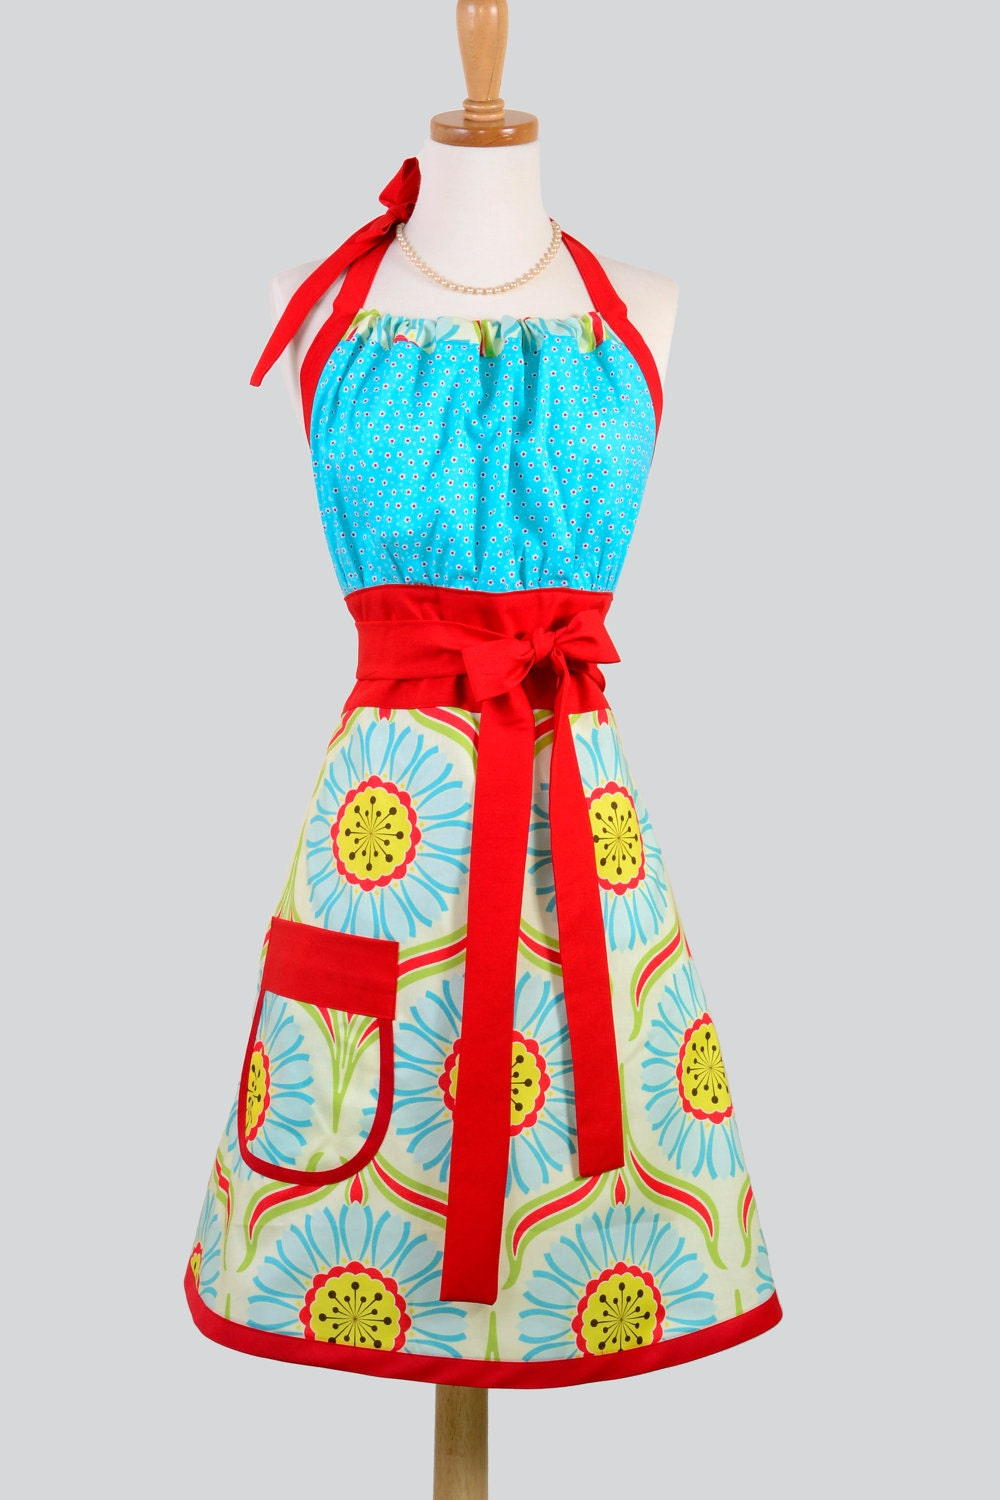 Cute Kitsch Apron / Red and Aqua Mix it up In Heather Bailey Pop Garden and Michael Miller Blue and Red